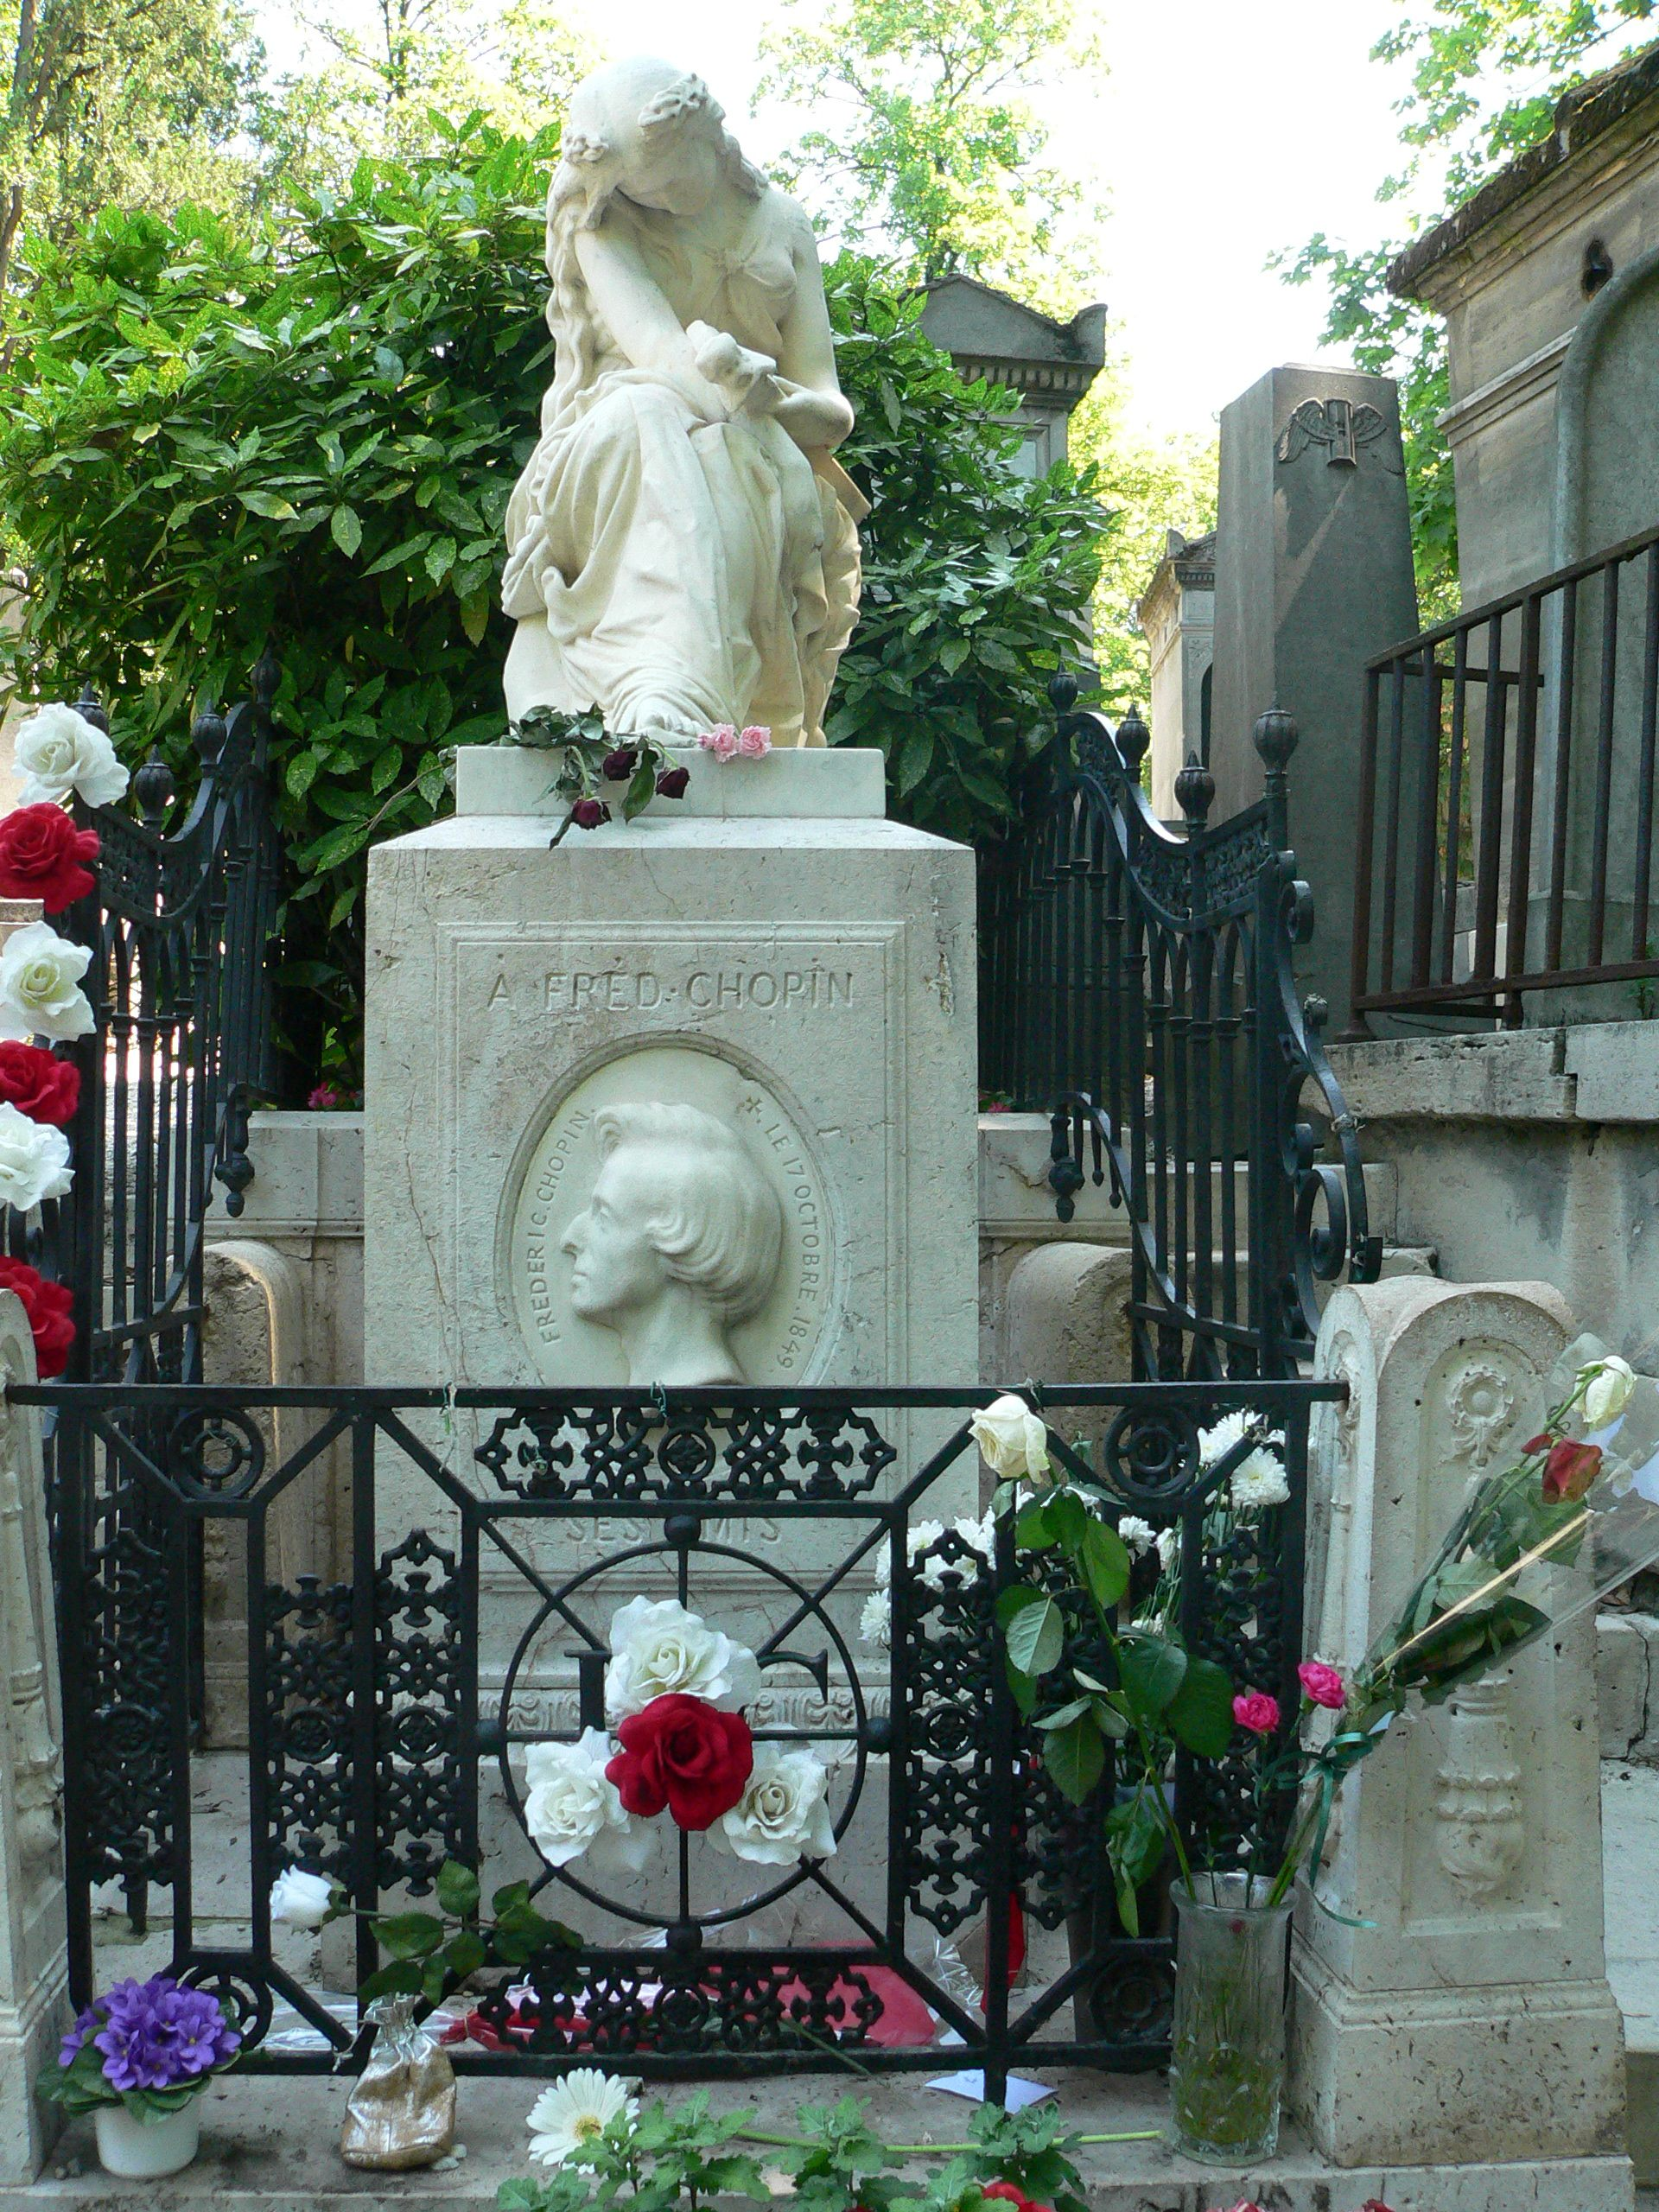 http://upload.wikimedia.org/wikipedia/commons/8/89/Perelachaise-Chopin-p1000352.jpg